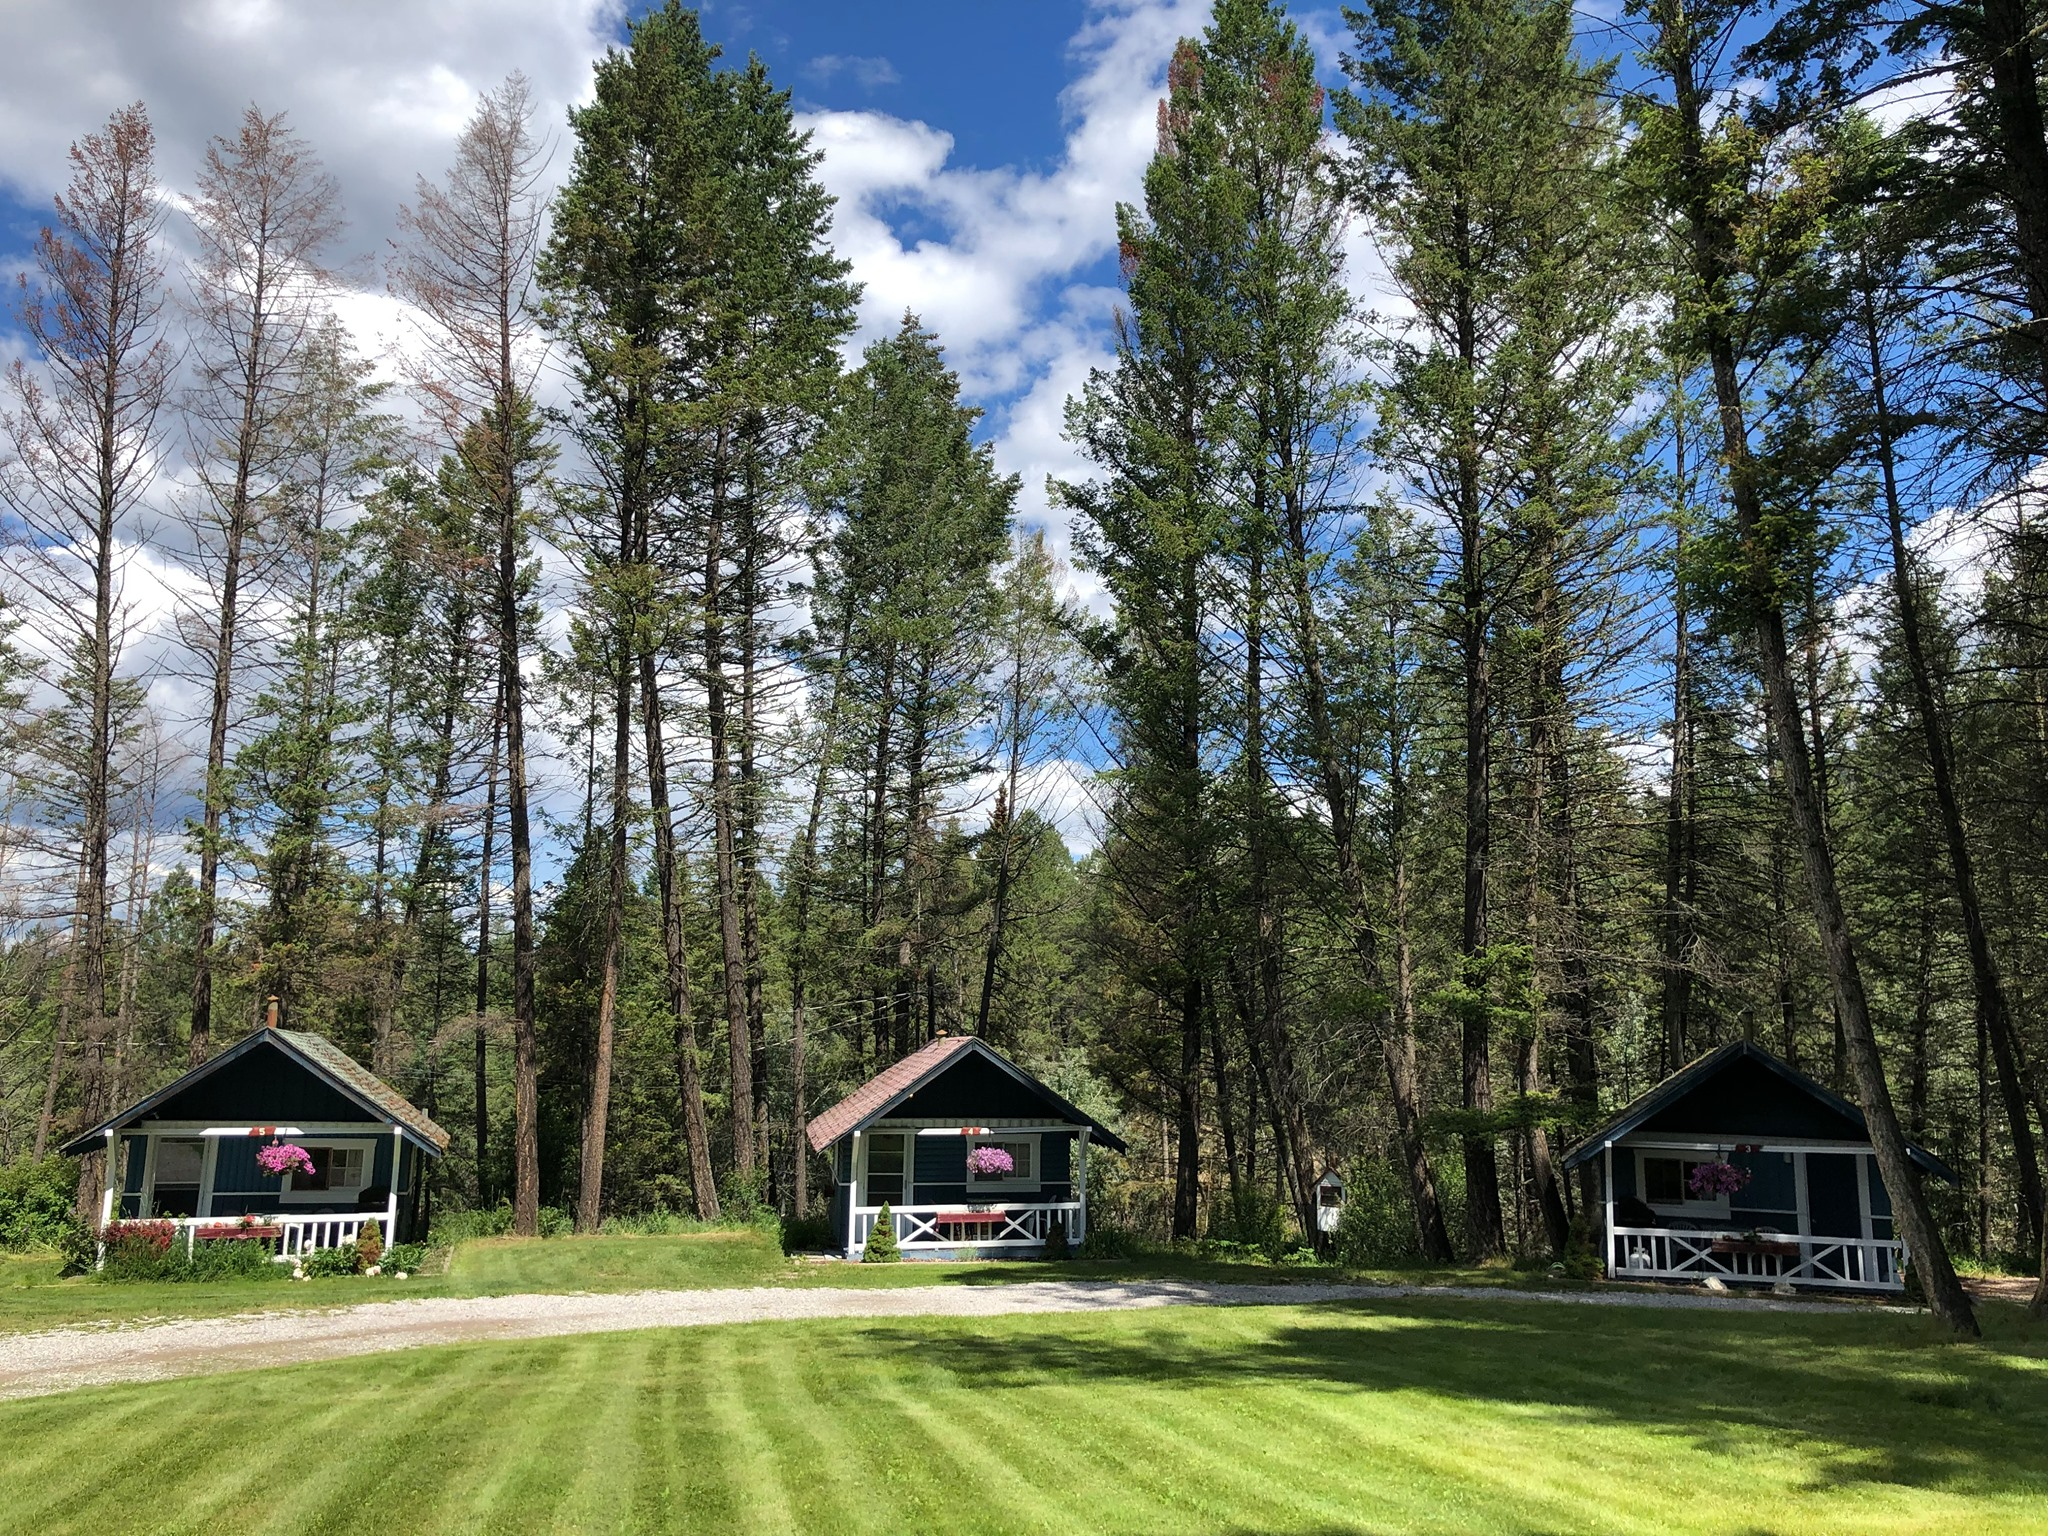 Cabins, tall trees, green area